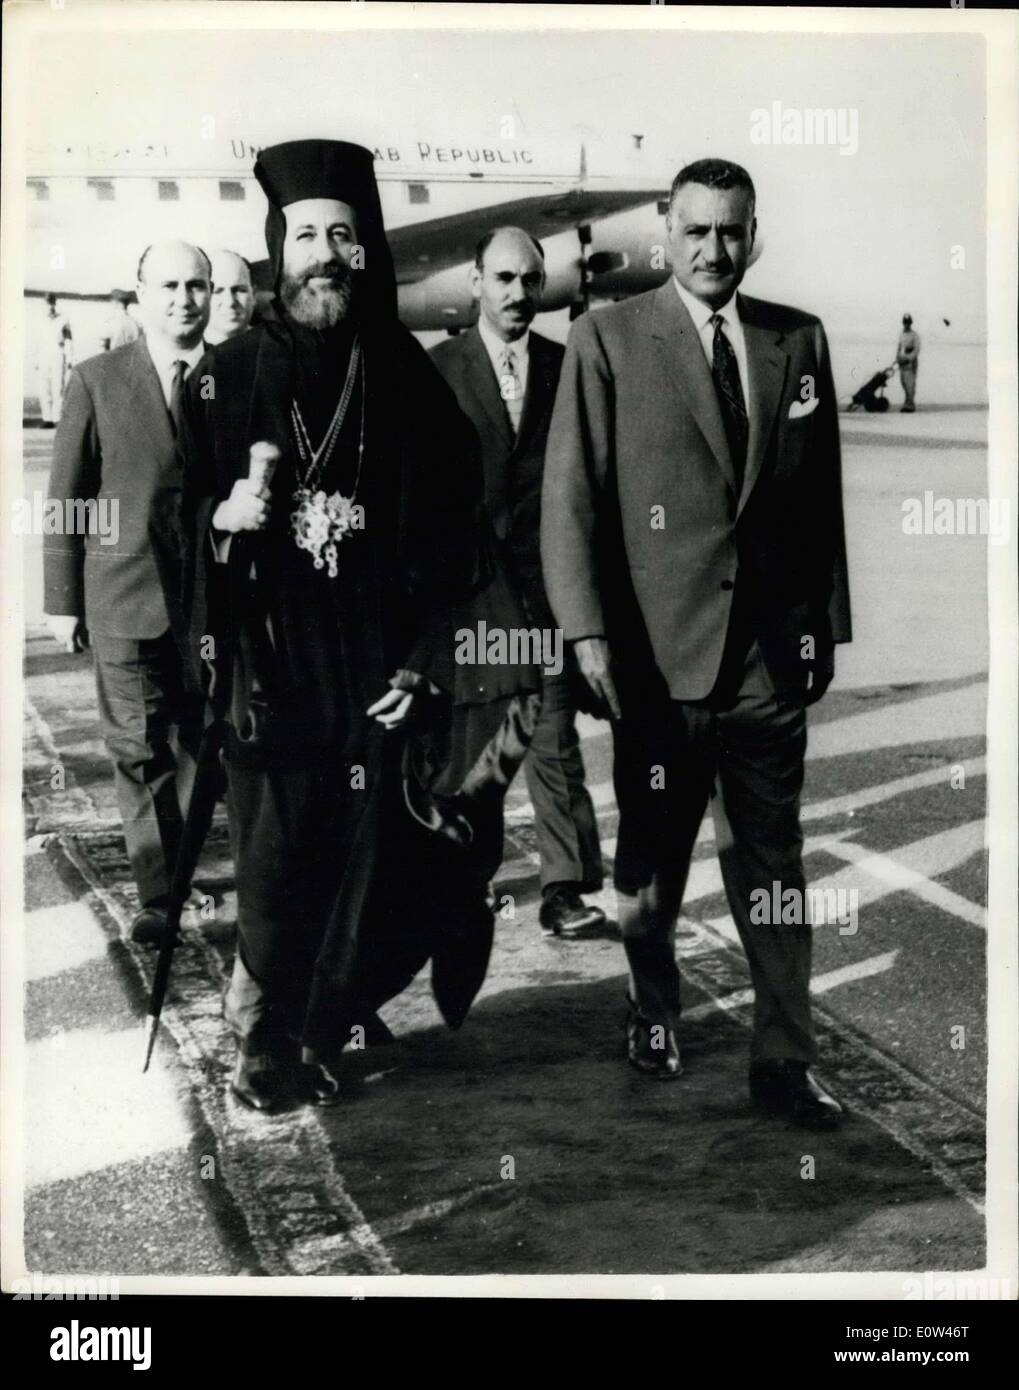 Jun. 06, 1961 - President Makarios In Cairo. The President of Cyprus, Archbishop Makarios arrived in Cairo over - Stock Image